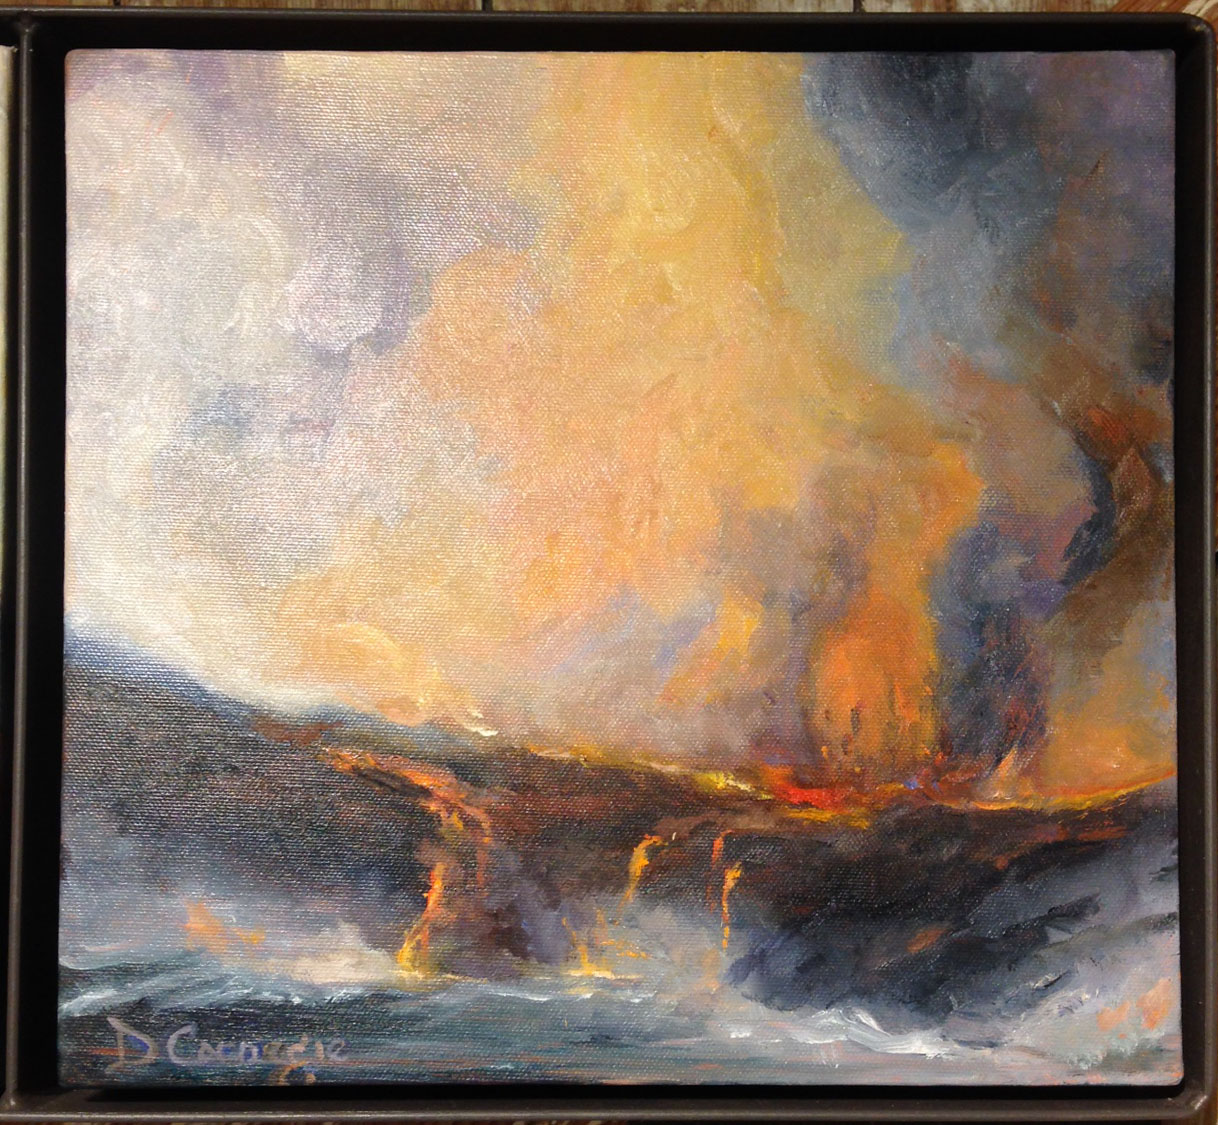 Earth, Smoke, and Fire, Original Oil Painting by D ... Earth Painting Oil